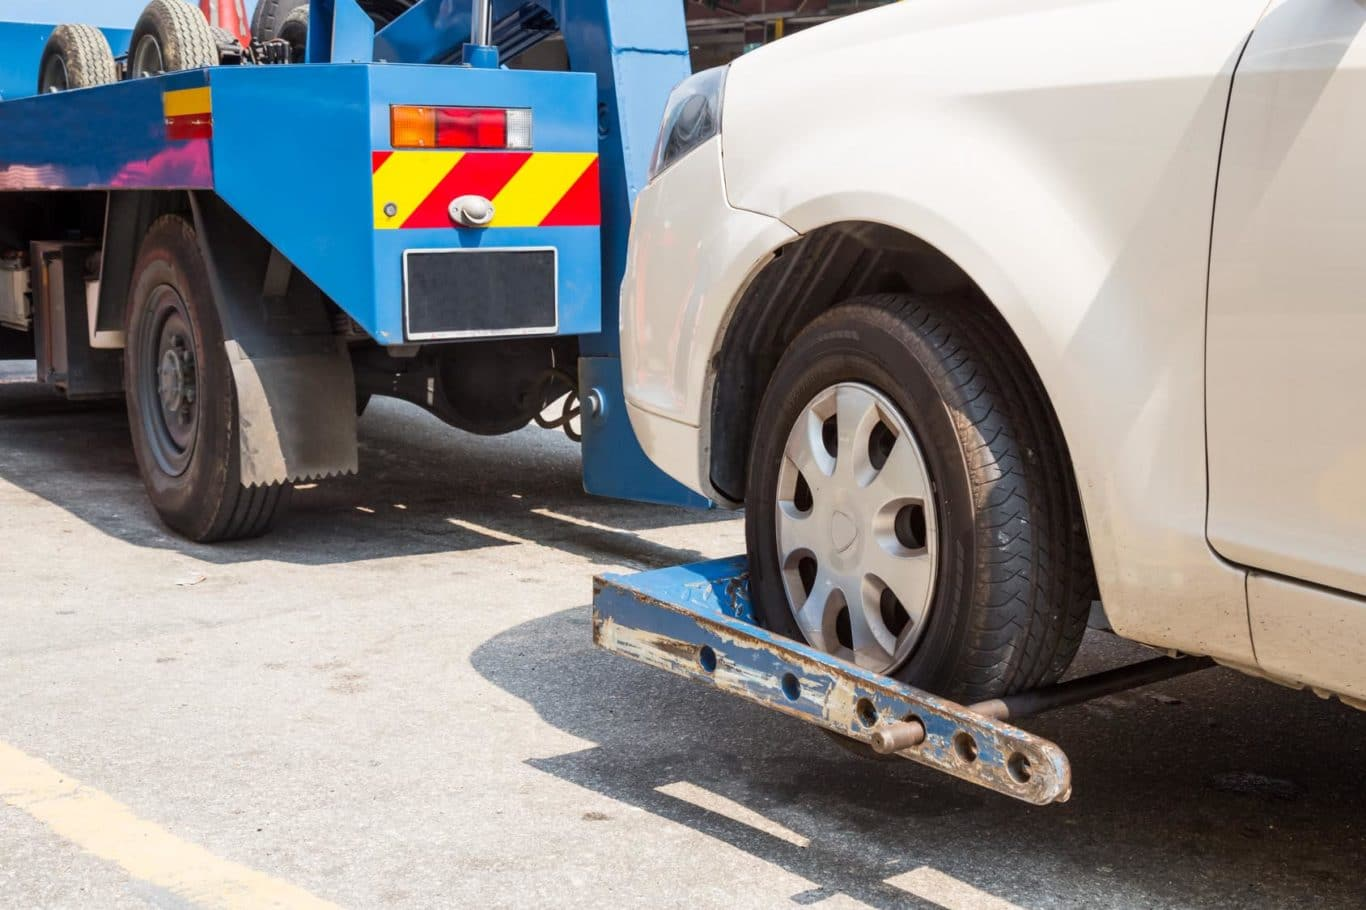 Dublin 17 (D17) Dublin, Fingal expert Towing services